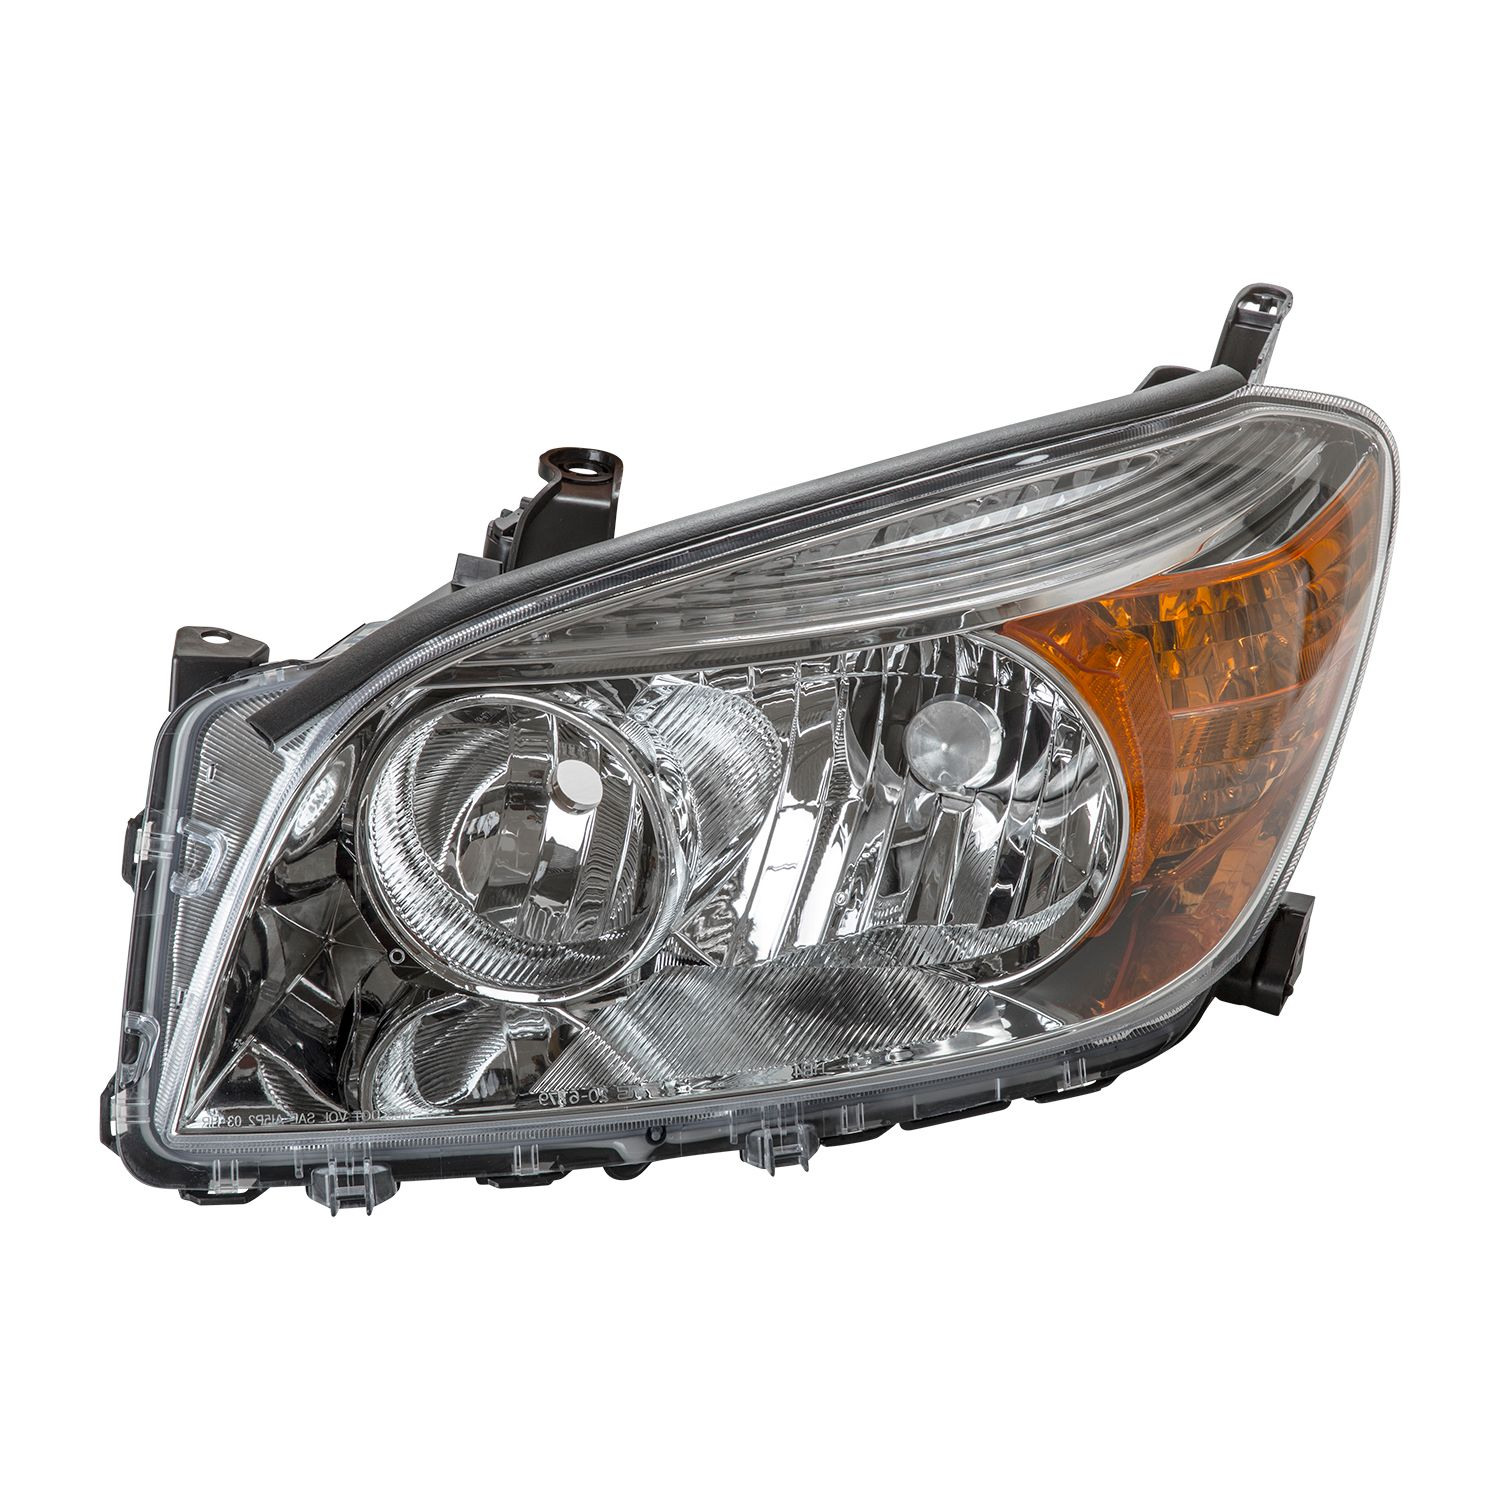 TYC 20-9495-00-1 Toyota Tundra Right Replacement Head Lamp